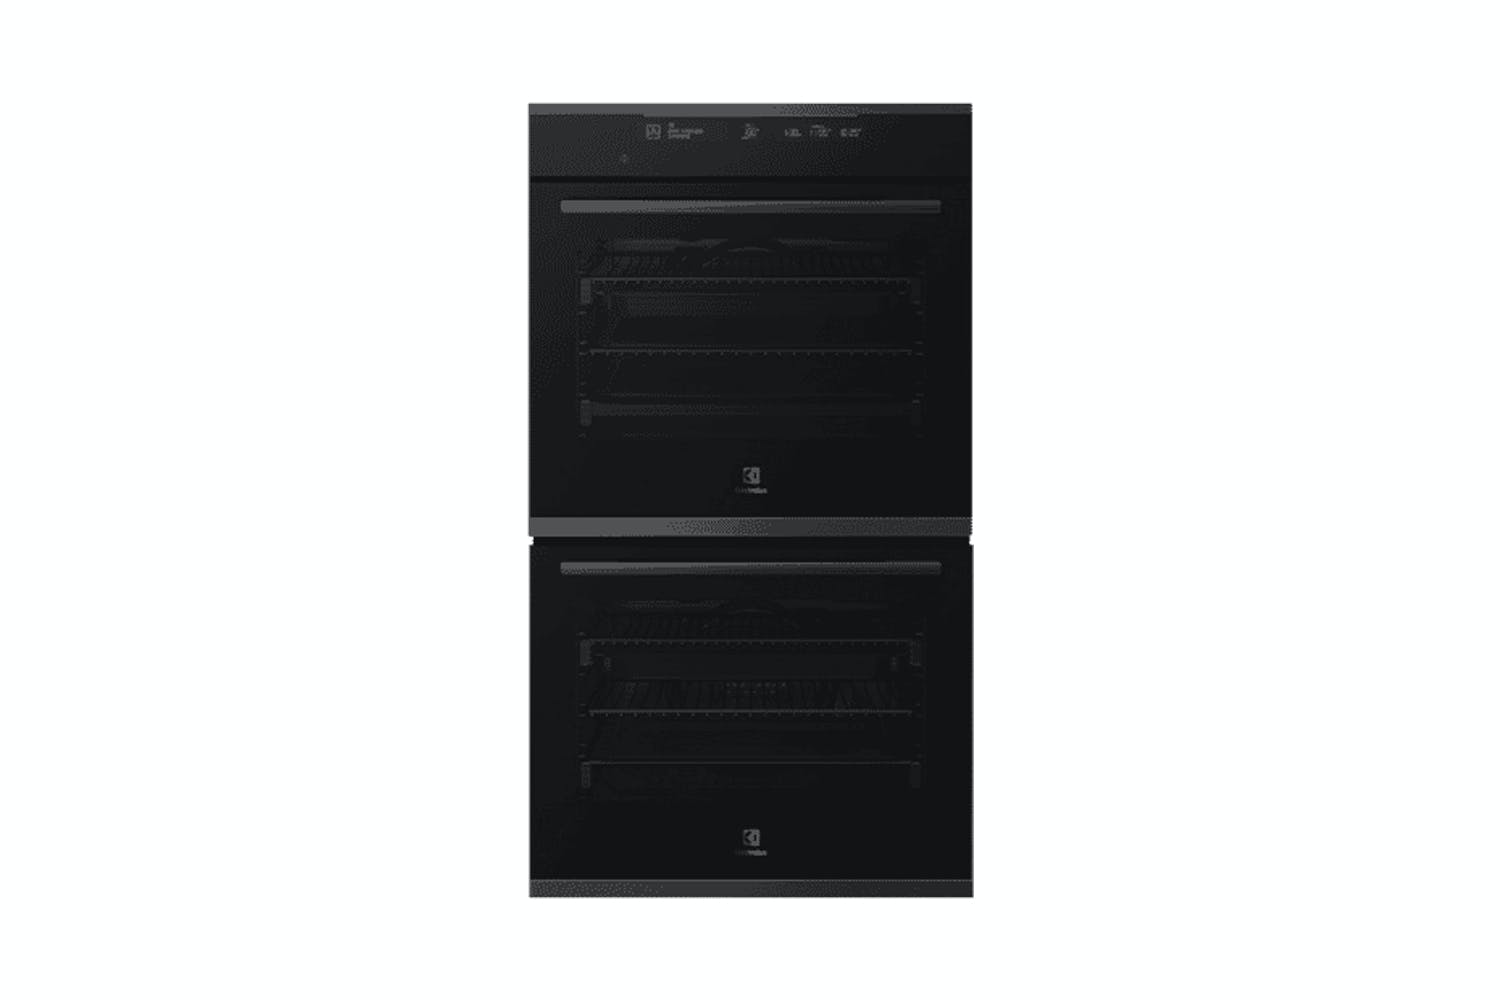 Image of Electrolux 60cm Multifunction Double Oven